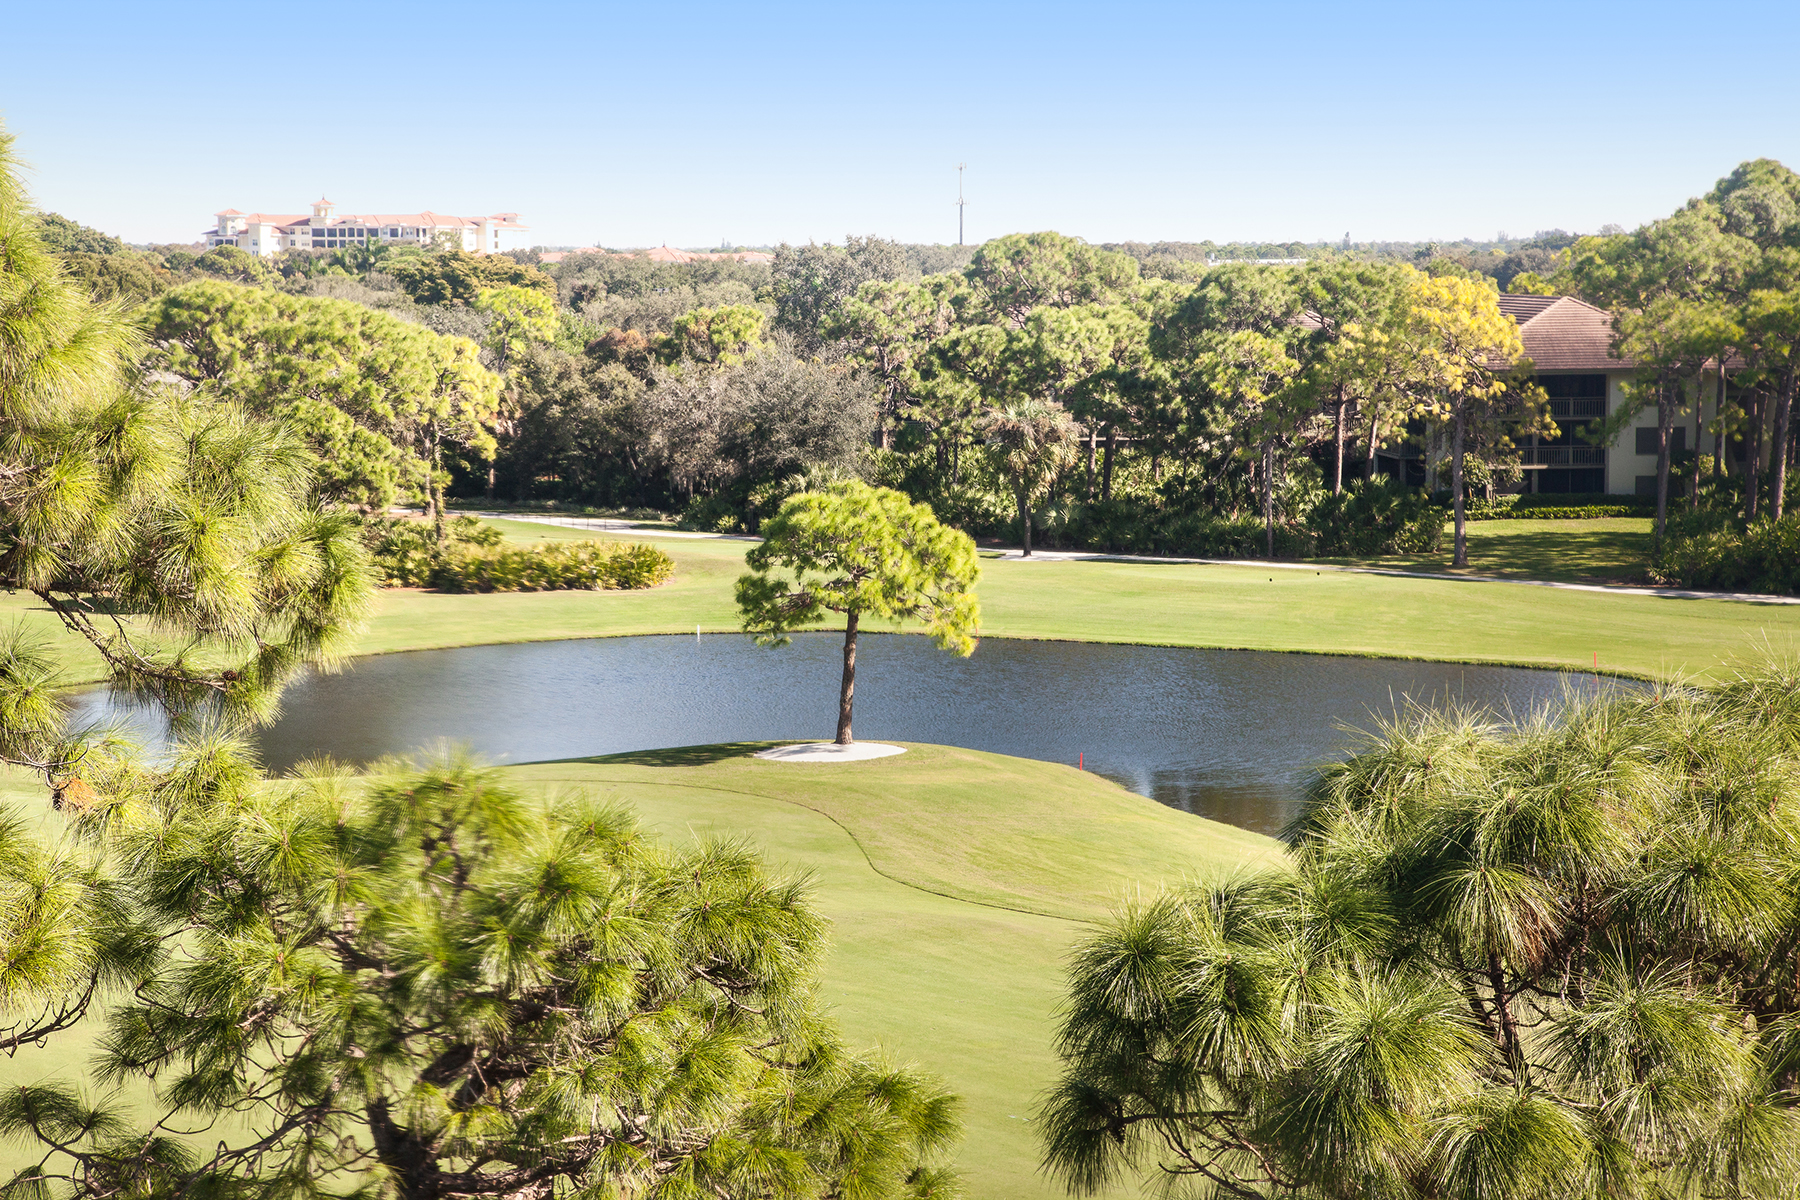 Condominium for Sale at BONITA BAY - WEDGEWOOD 26910 Wedgewood Dr PH 501, Bonita Springs, Florida 34134 United States